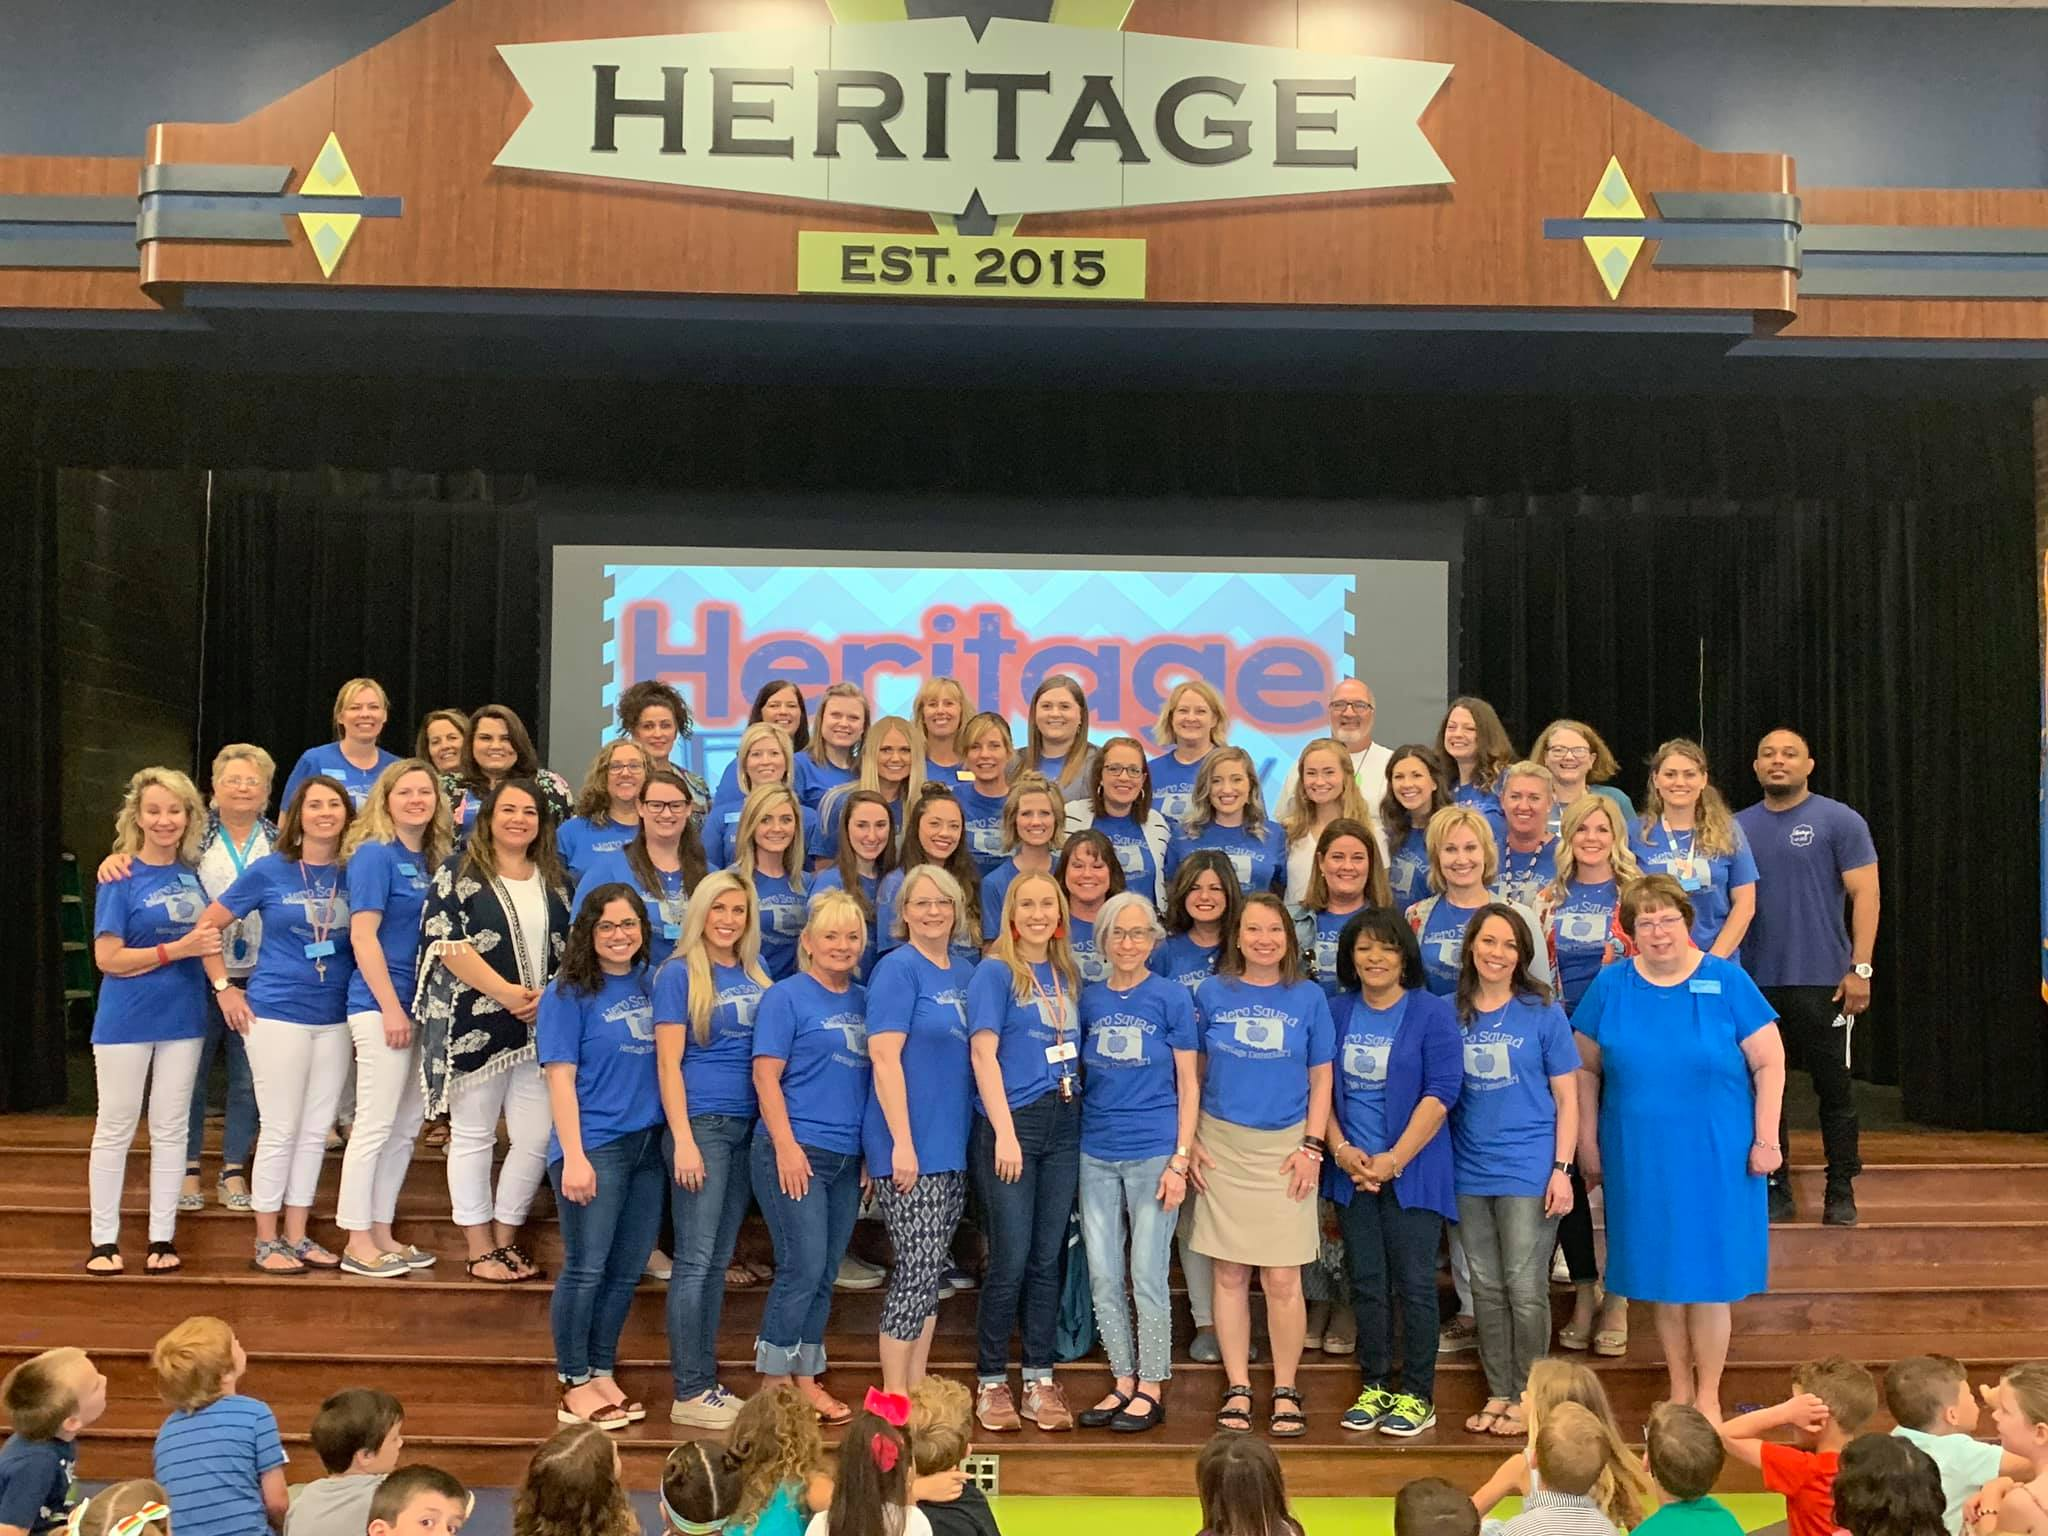 Teachers standing on stage wearing blue shirts